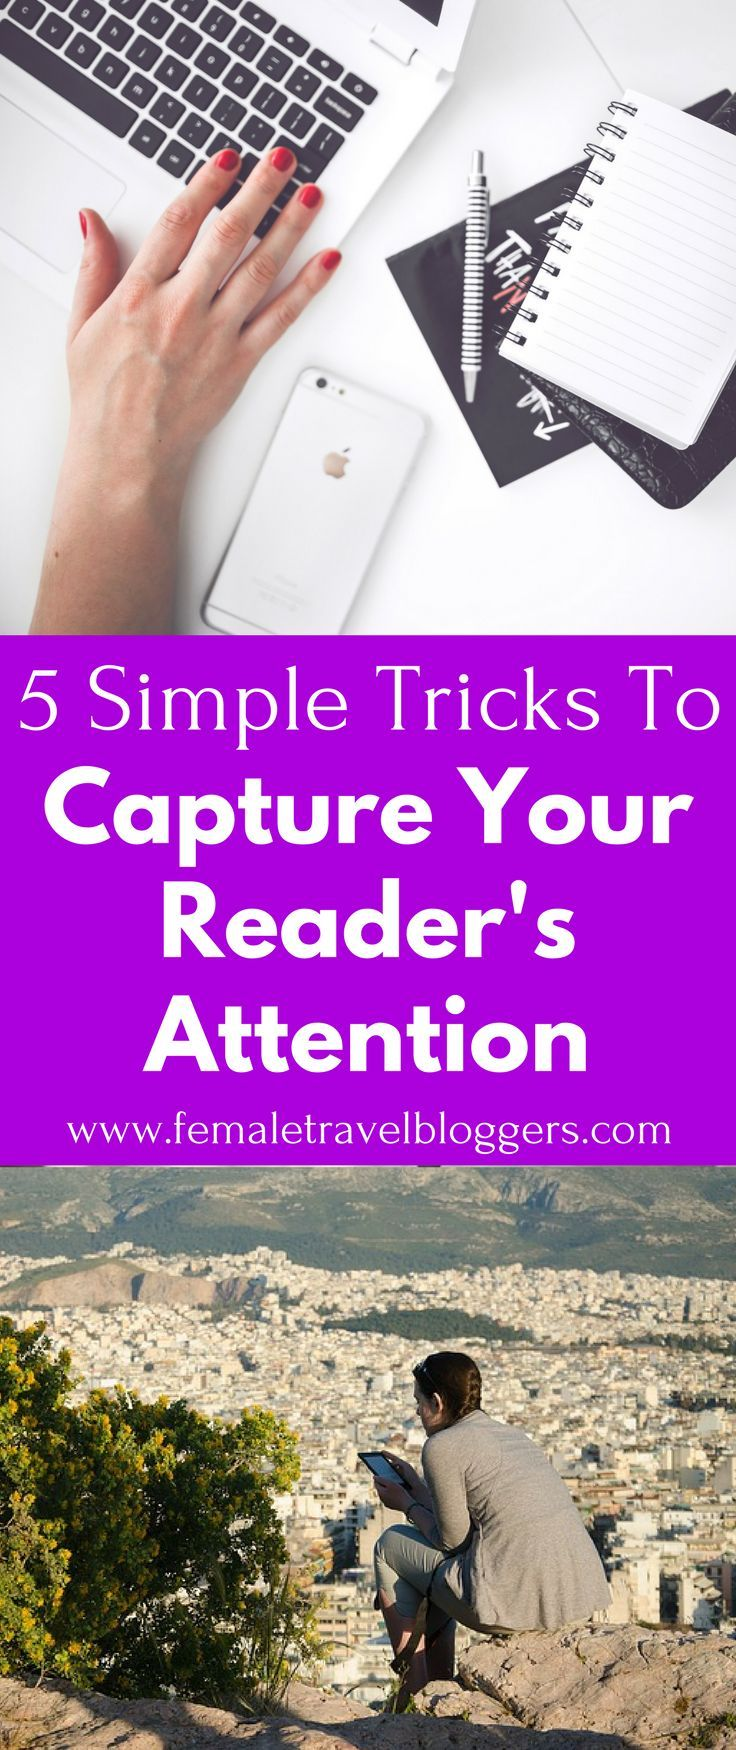 Keeping your readers interested as a blogger can be very difficult. Check out these writing tips for bloggers to help catch your reader's attention and keep it. When you're done reading these tips, save it to your blogging board so you can find it later.